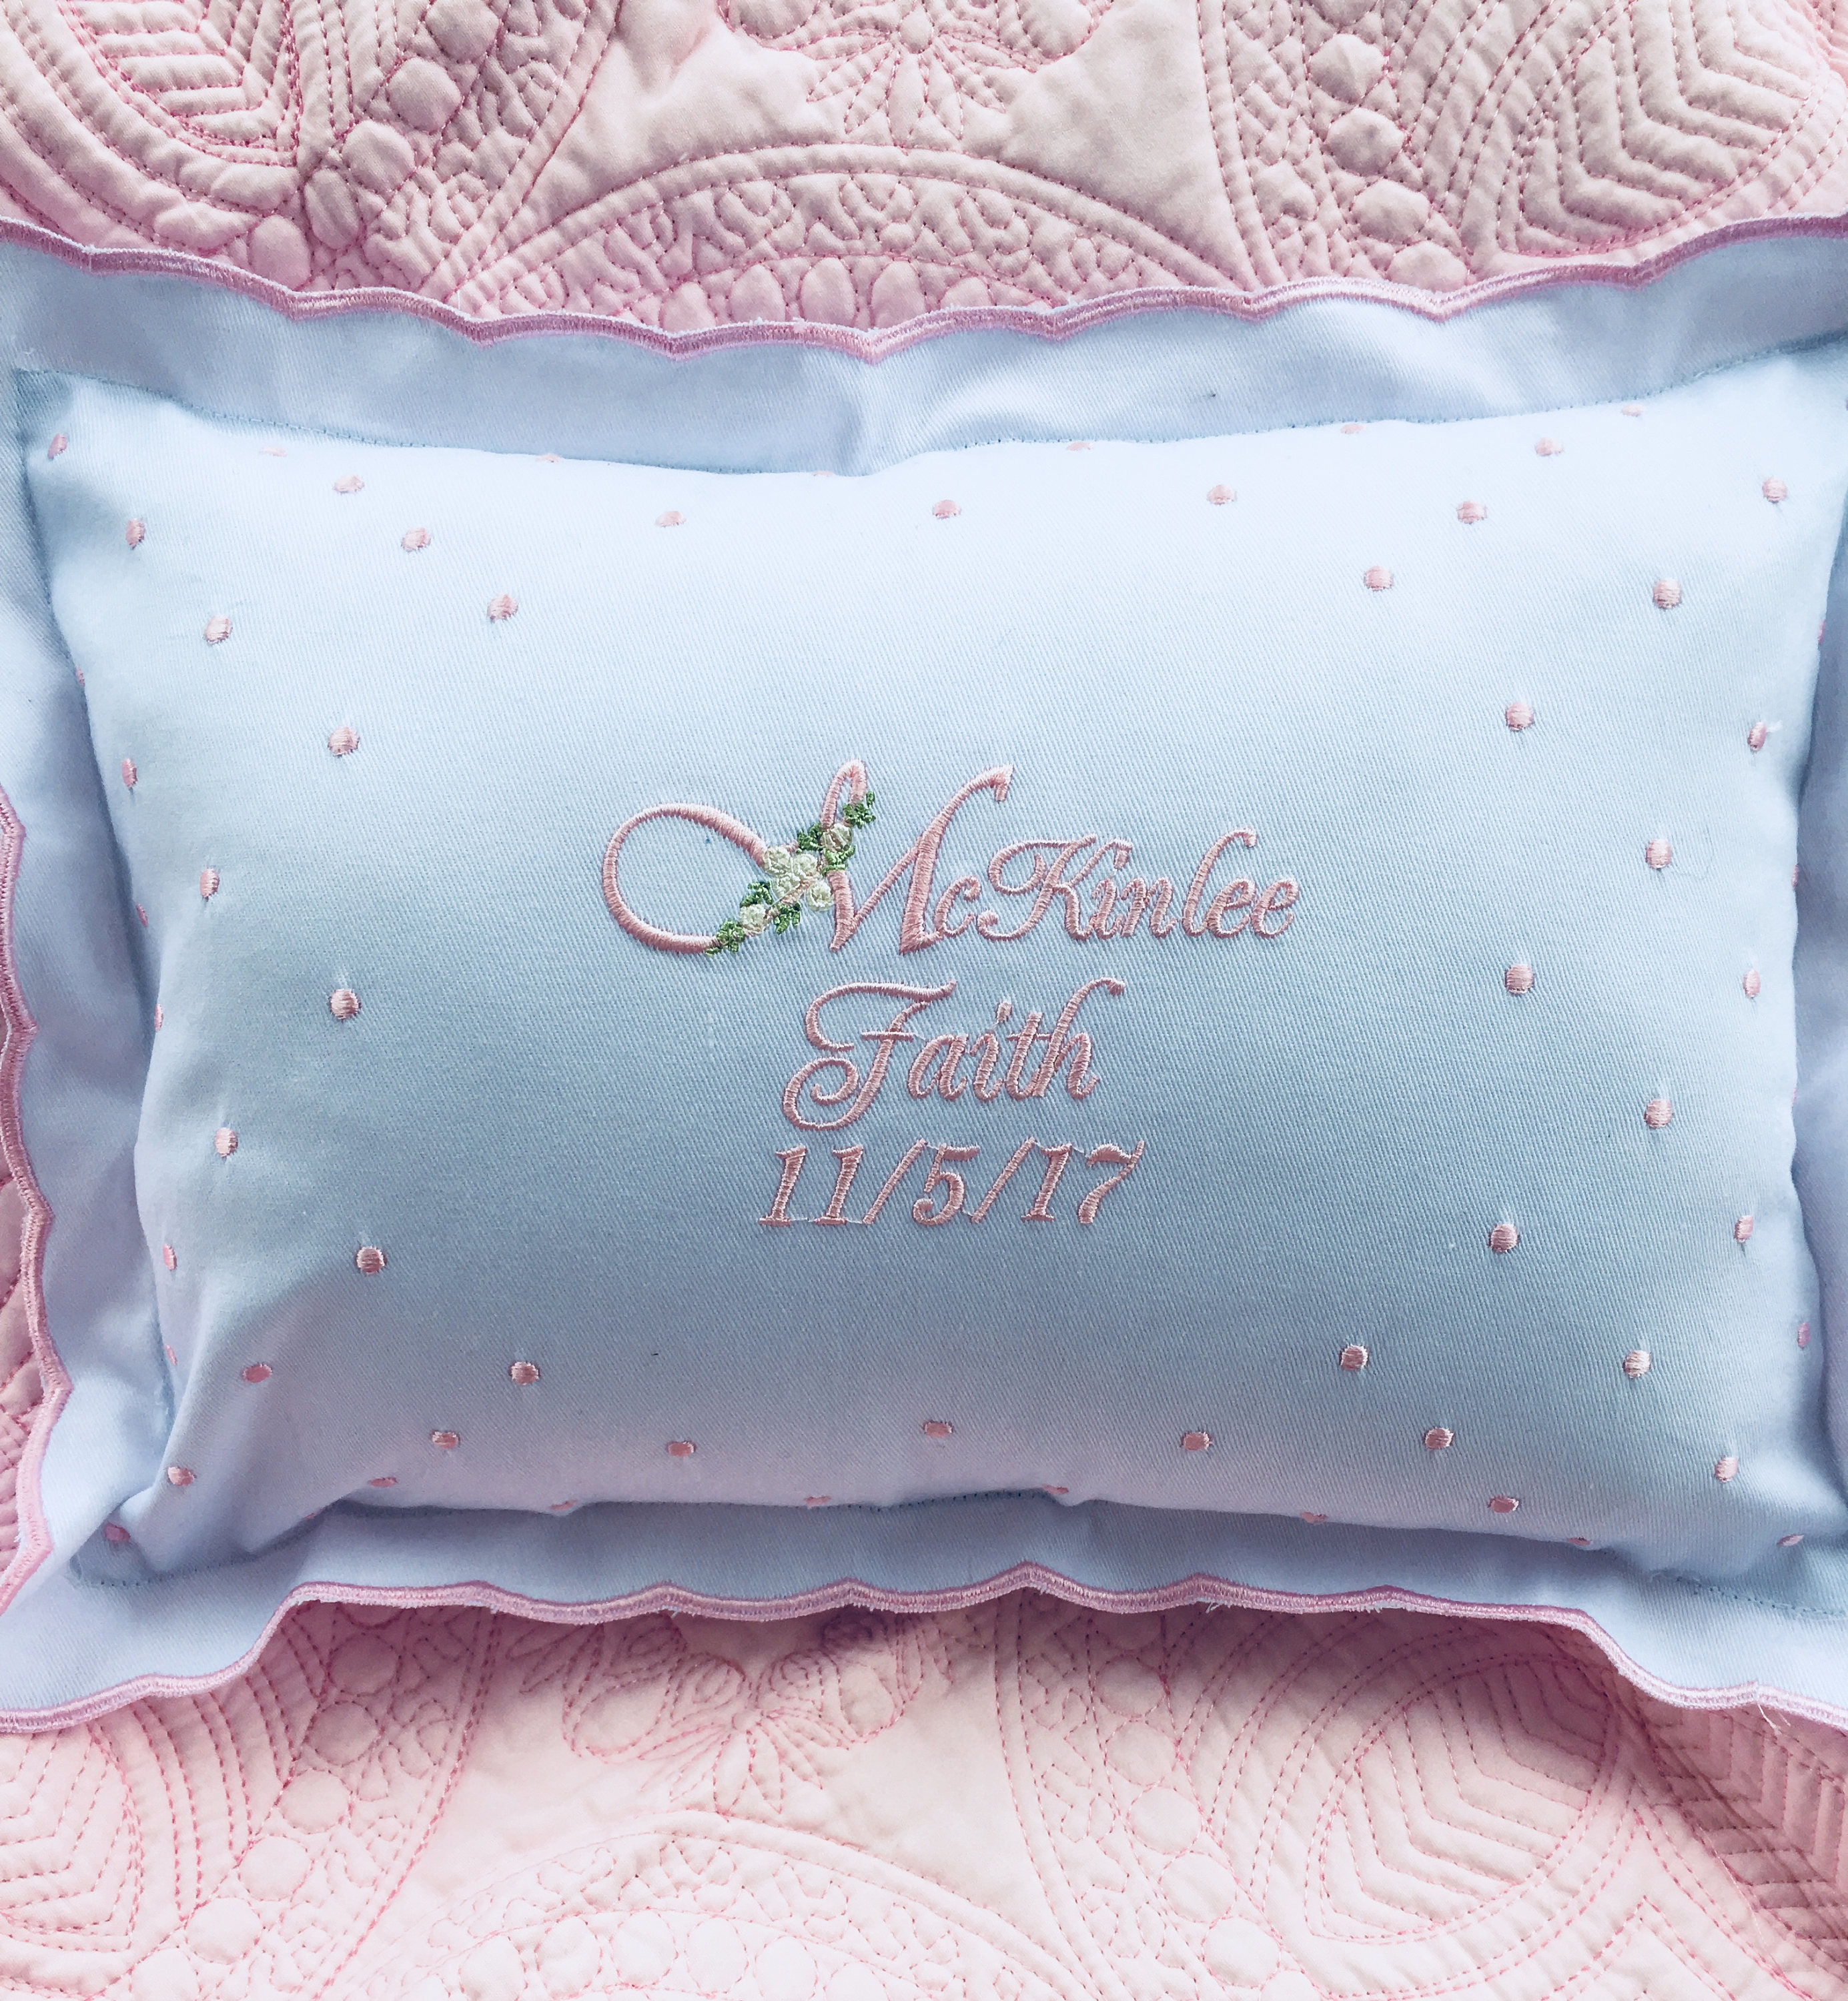 personalized pillows img pillow things